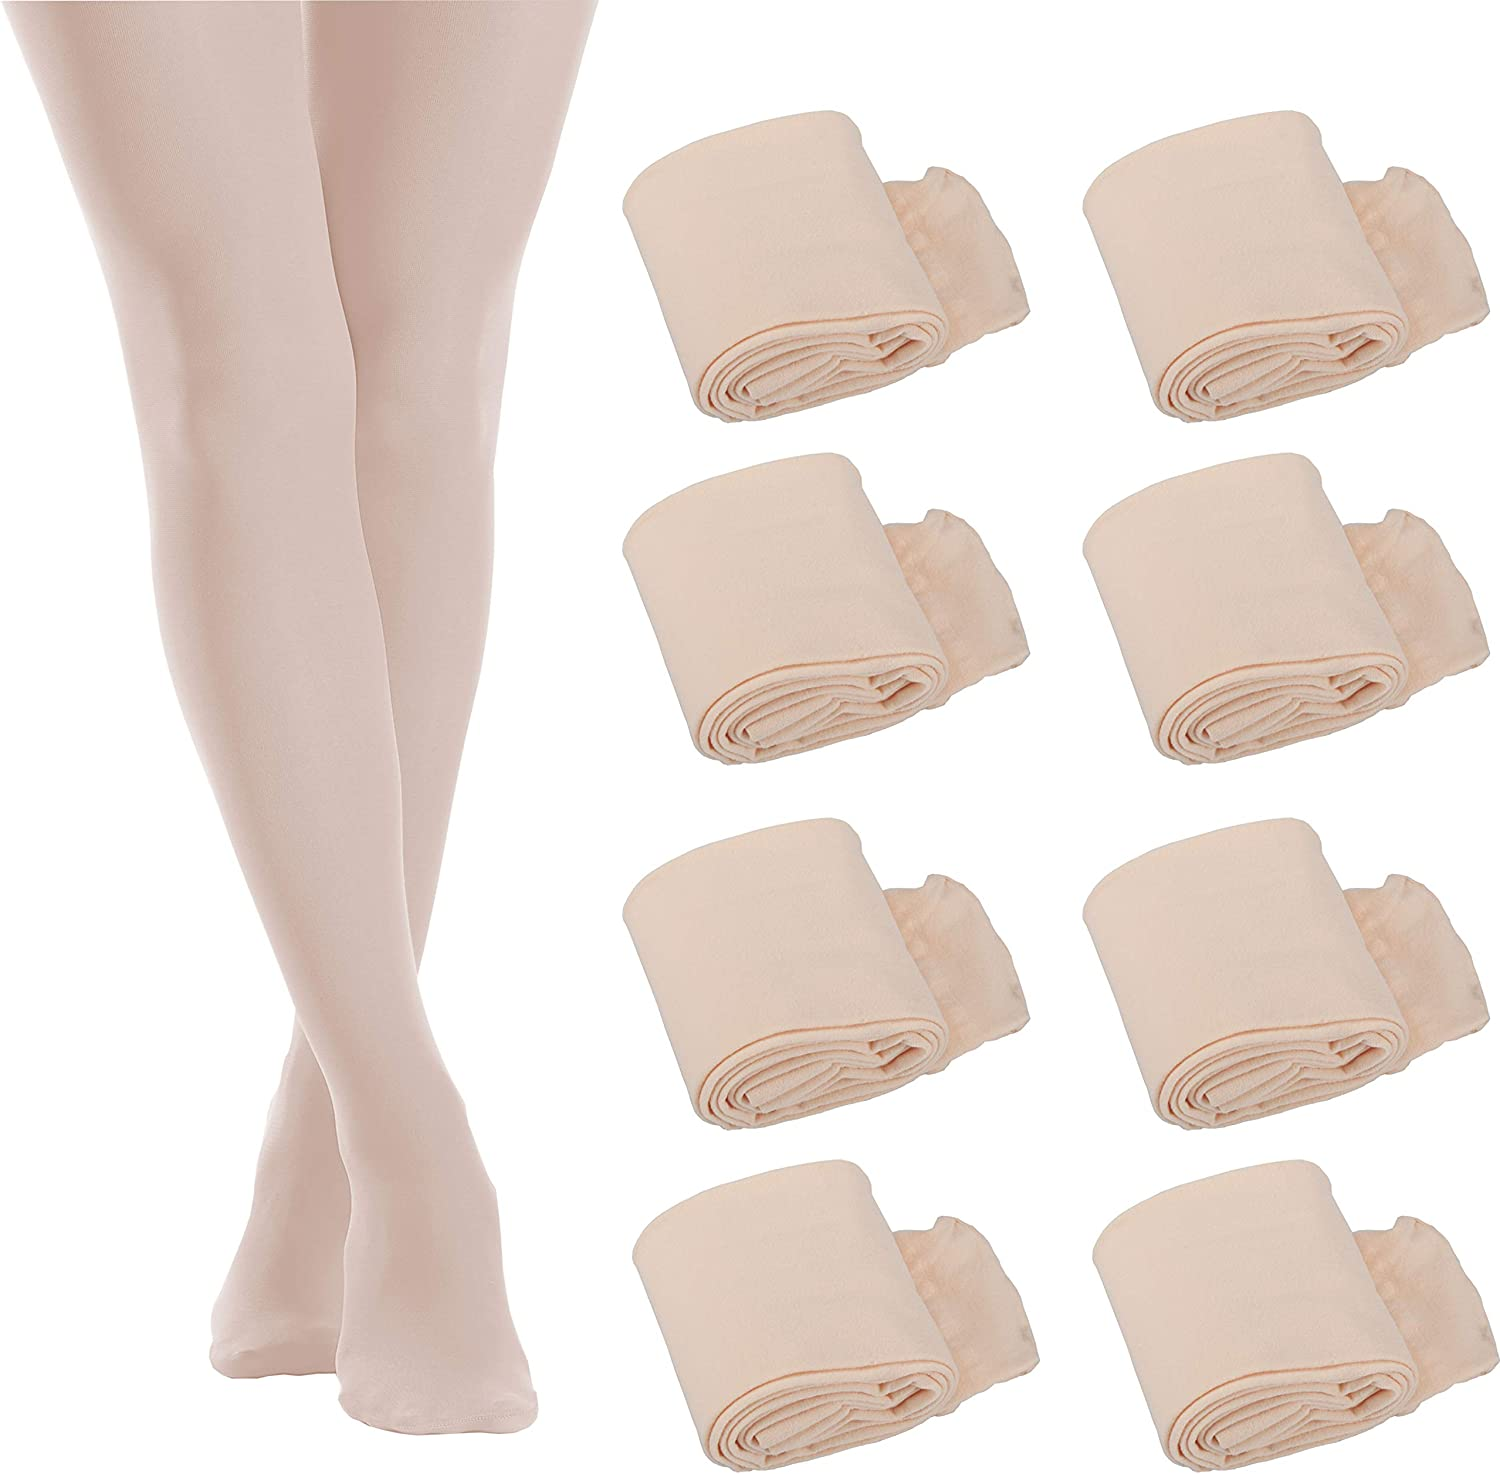 8 Pairs Girls Dance Tights Soft Pro Ballet Dance Tights Footed Pantyhose for Toddler Kids Girls